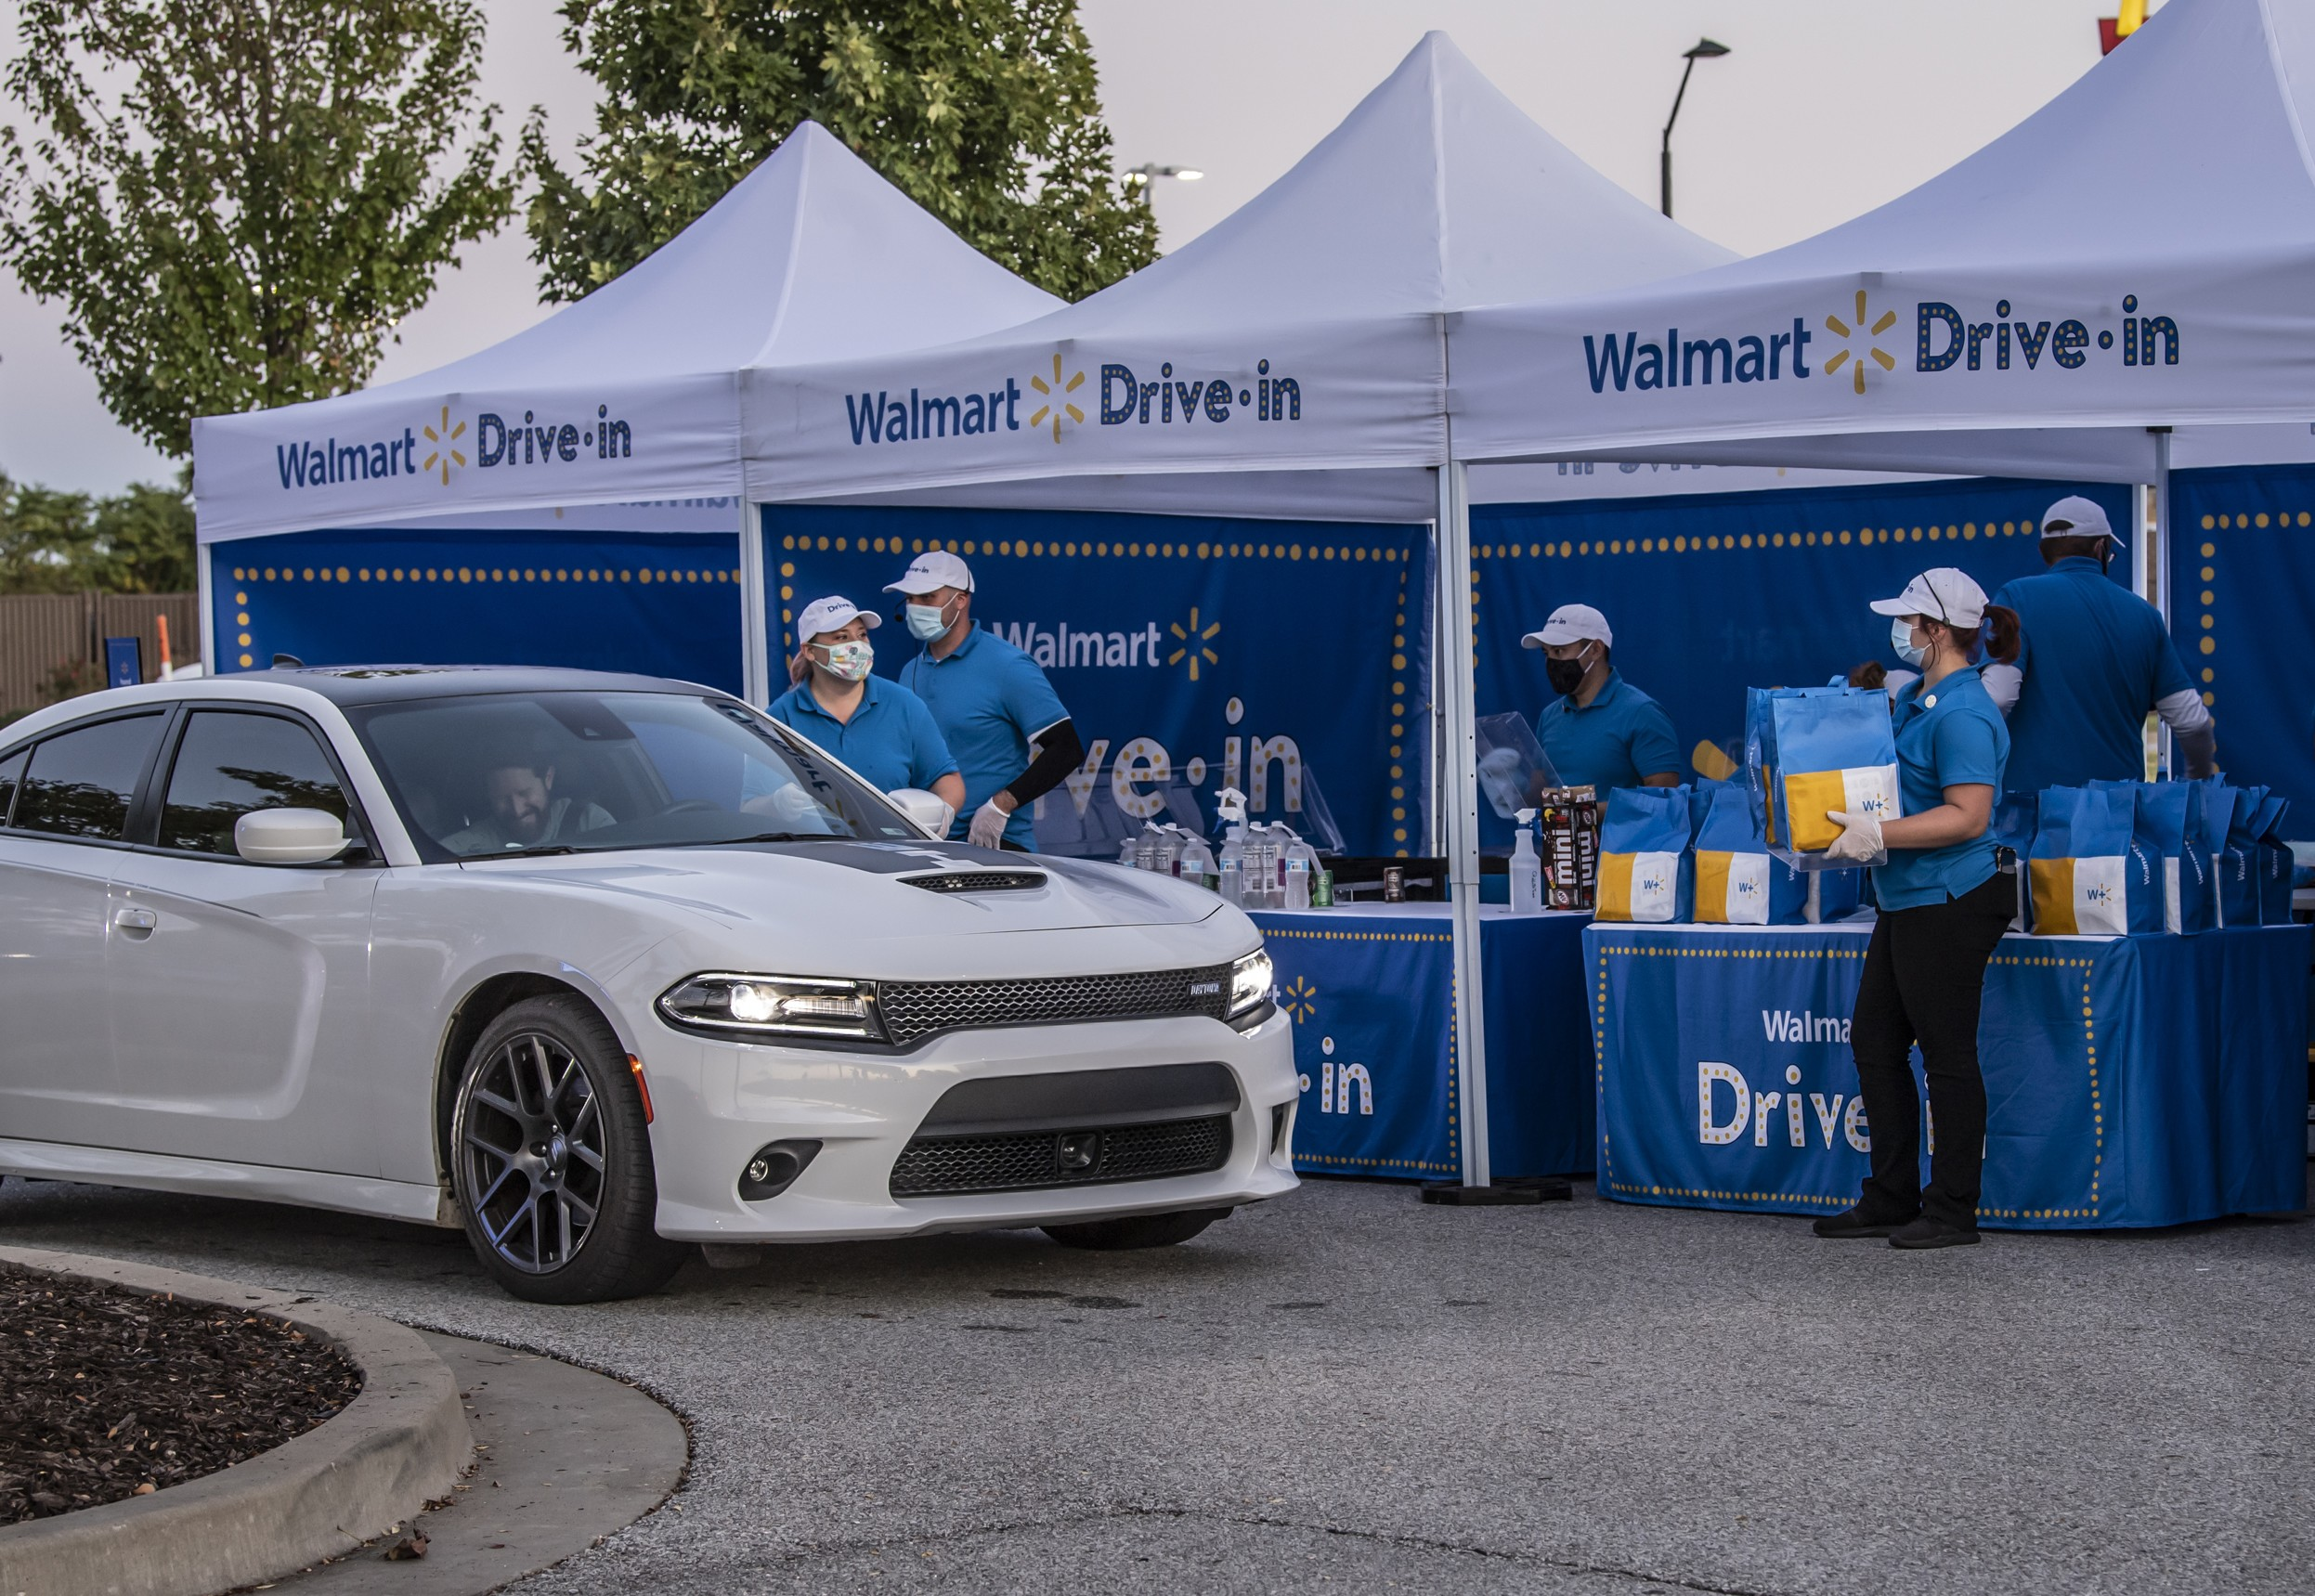 Walmart Drive-In associates passing out welcome bags